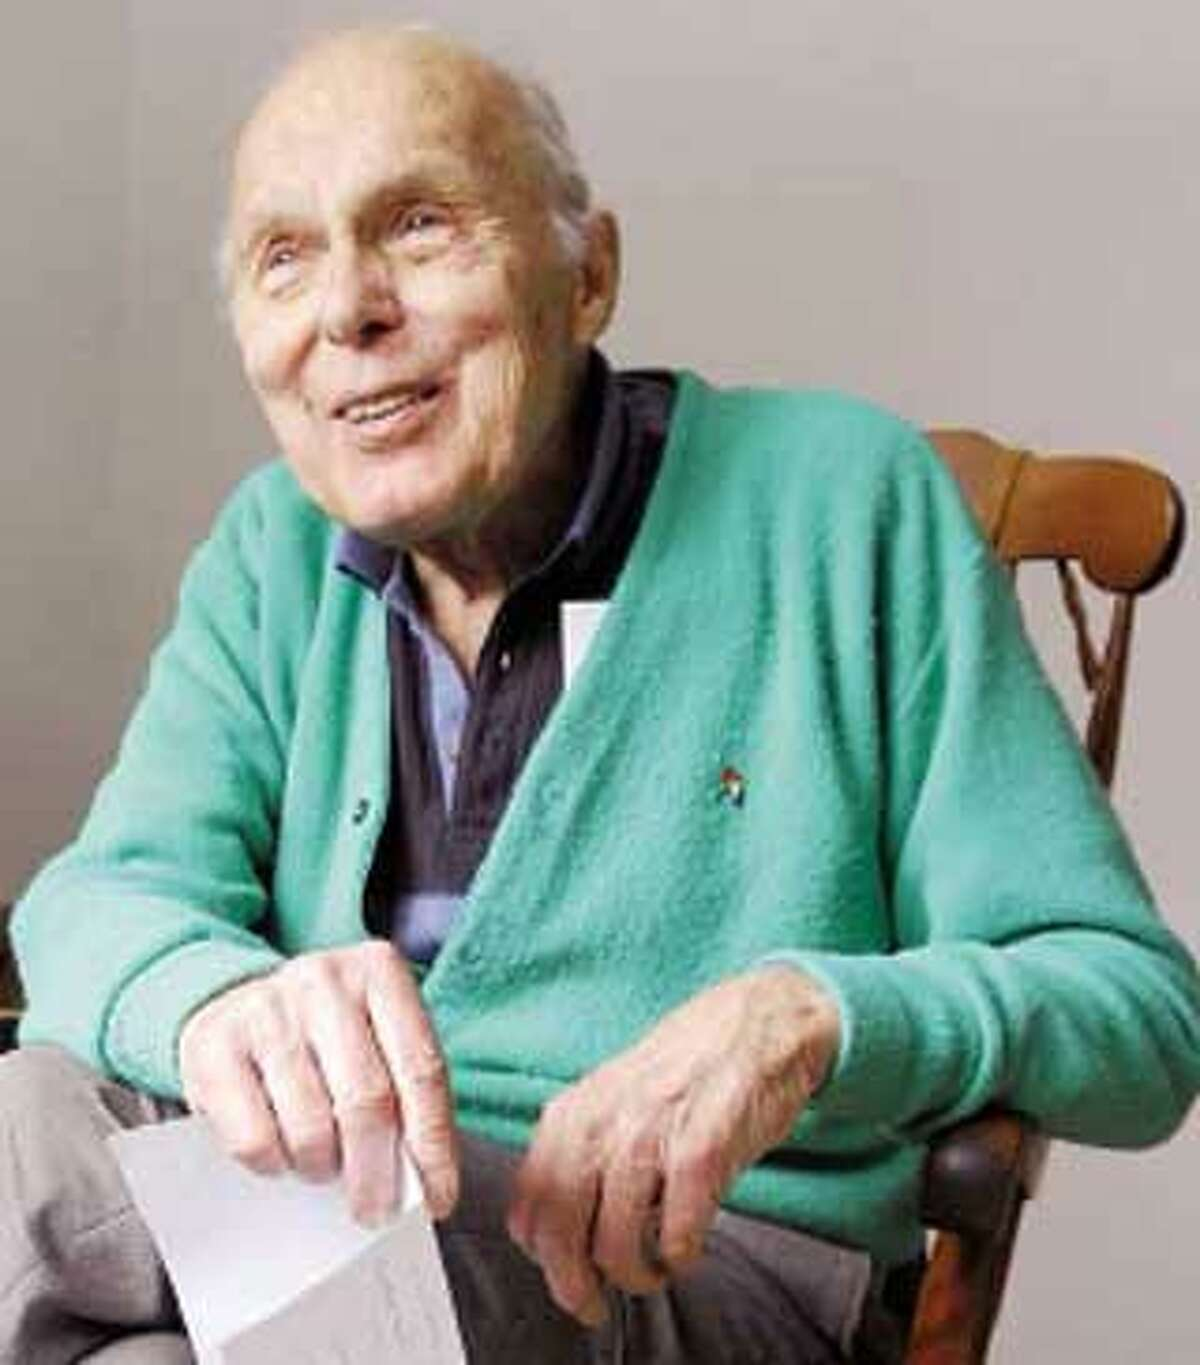 Boris Bolash, 86, a widower, holds a recent letter from a young women he met in France during World War II. He is hoping to reconnect. (Peter Hvizdak/Register)